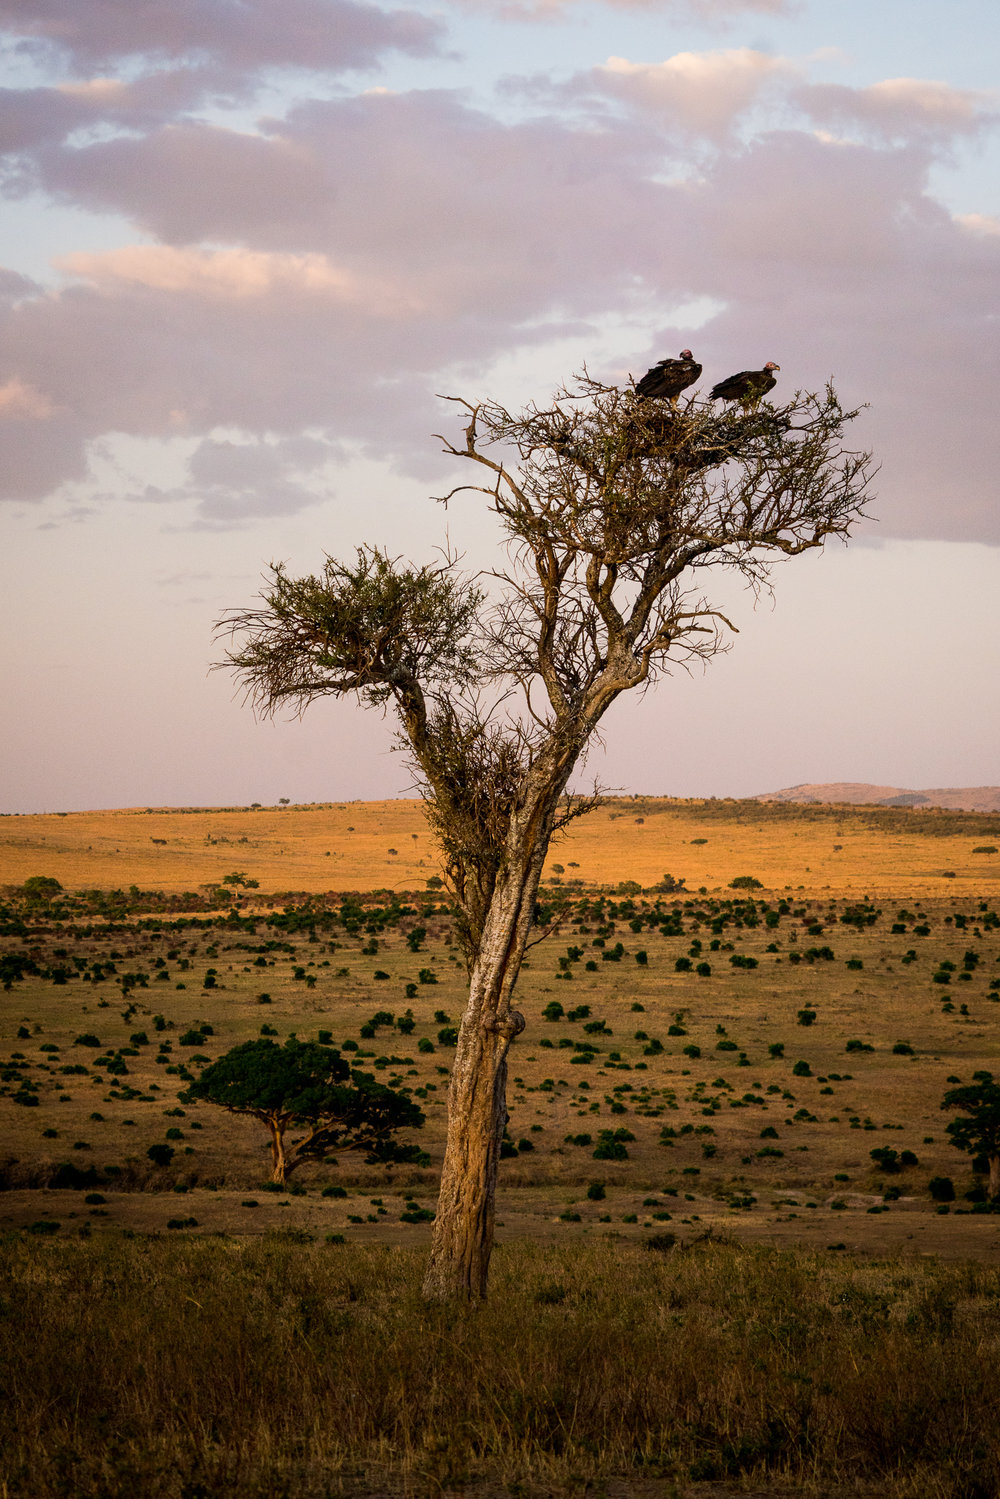 Maasai Mara at Sunset Ph. Dave Krugman